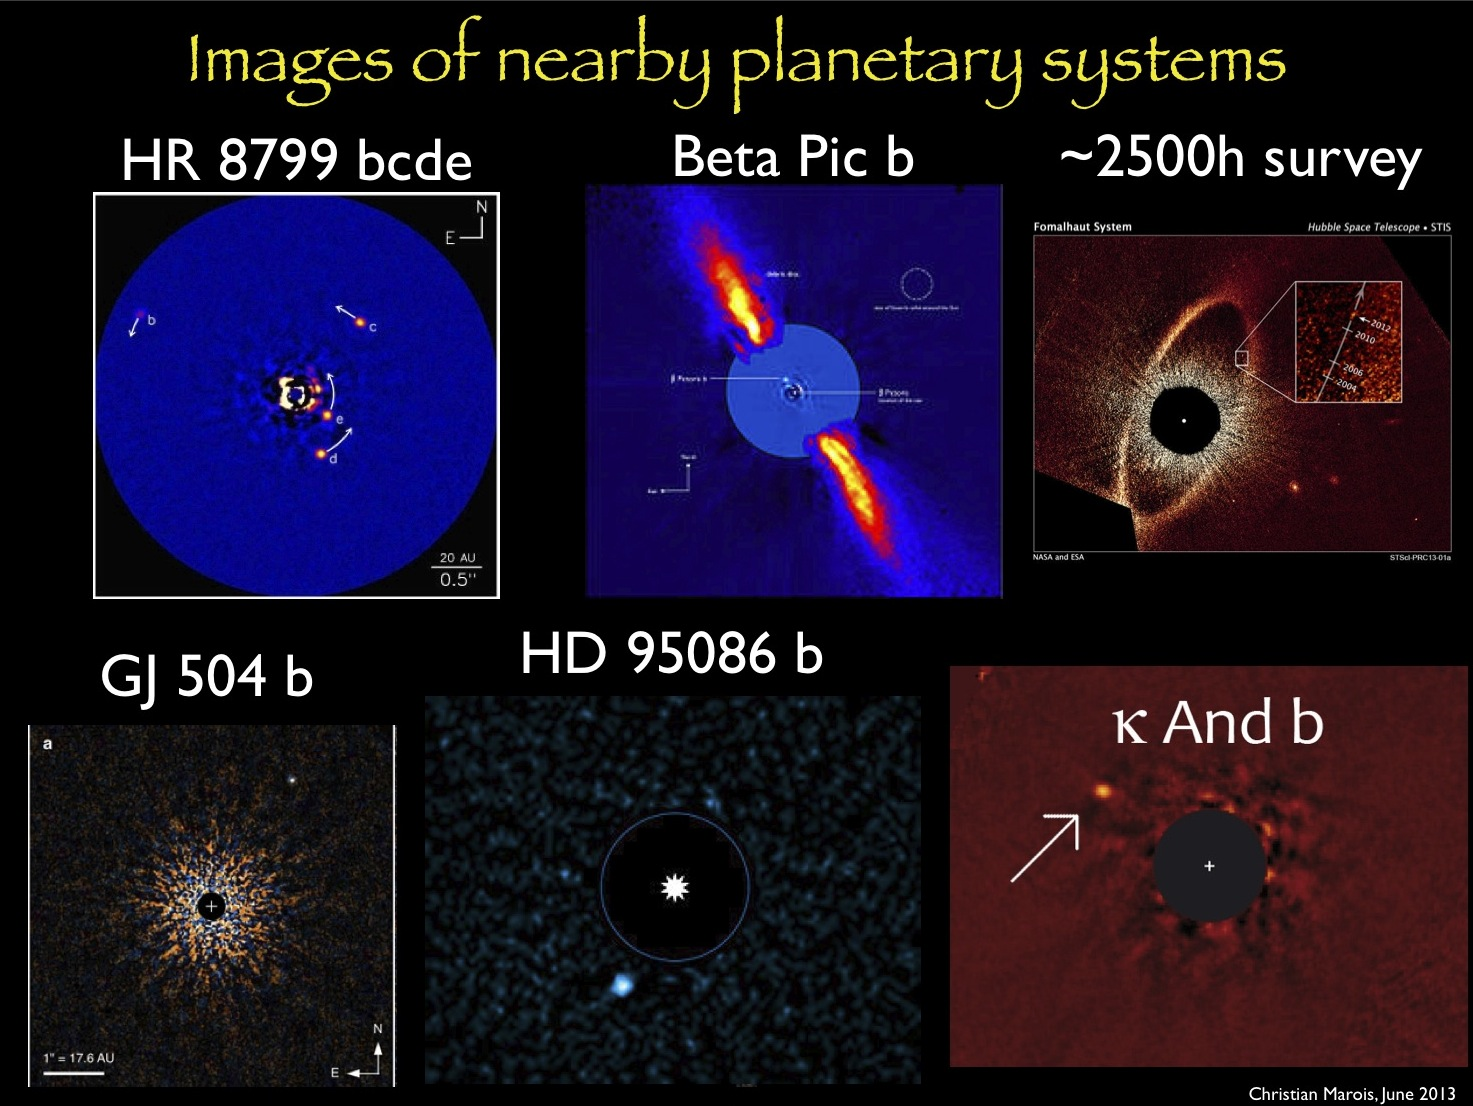 Five known planetary systems imaged with current adaptive optics systems. Fomalhaut shown on the top-right is the only system detected with the Hubble Space Telescope. HR8799 discovery was announced in a Science article in 2008 by a team led by C. Marois including members of the GPI team (credit: C. Marois).